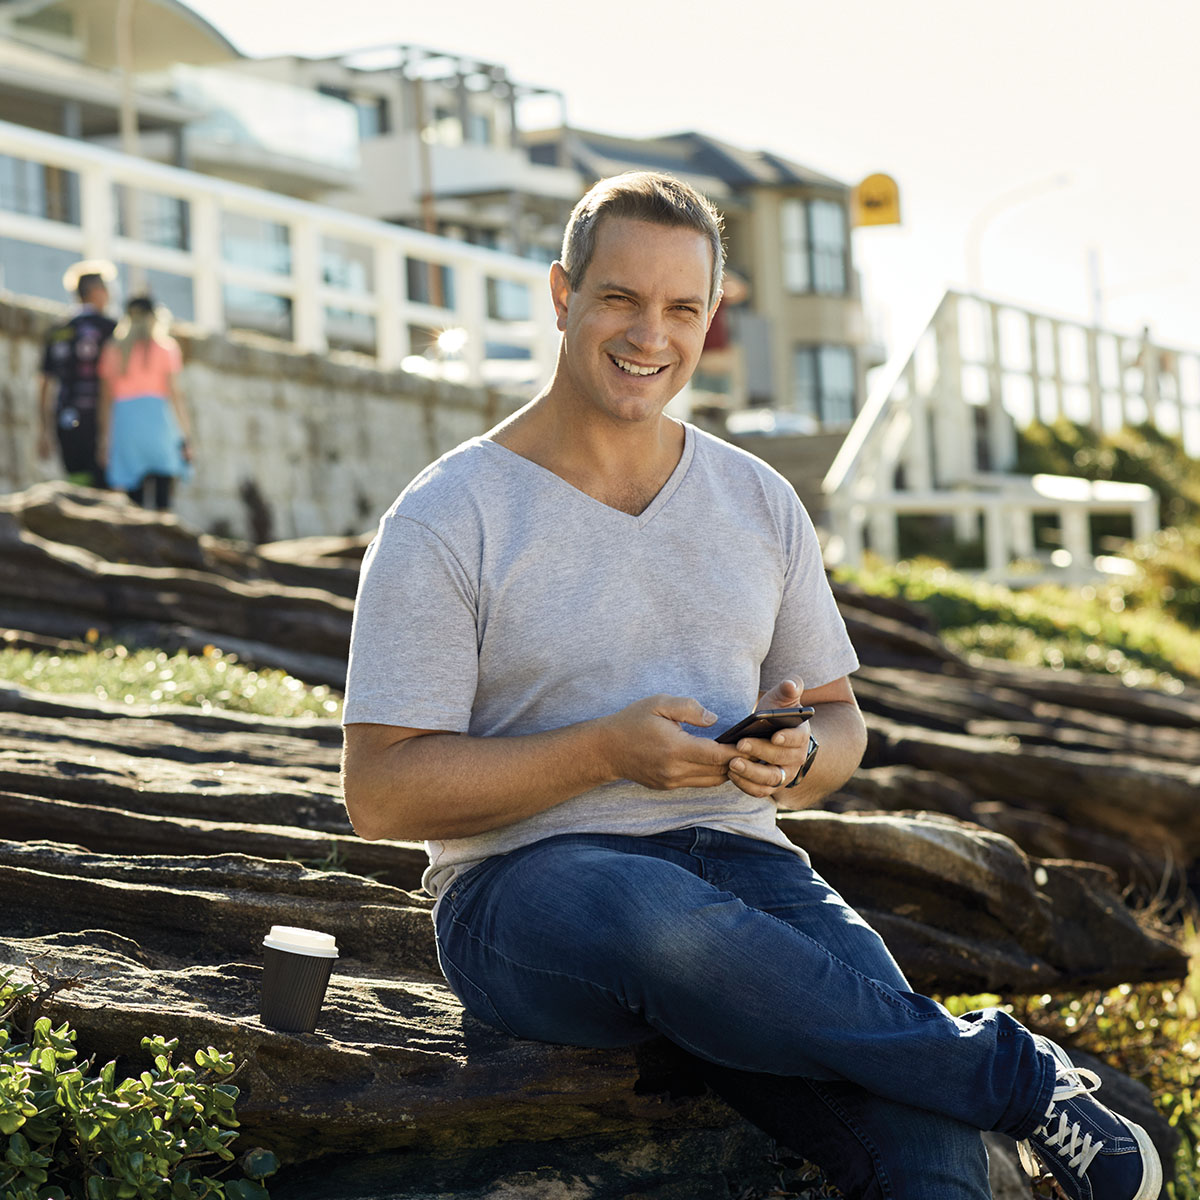 A man sitting with a legged crossed over and holding his phone. His sitting on rocks near a beachfront properties. Macquarie customer - Warren